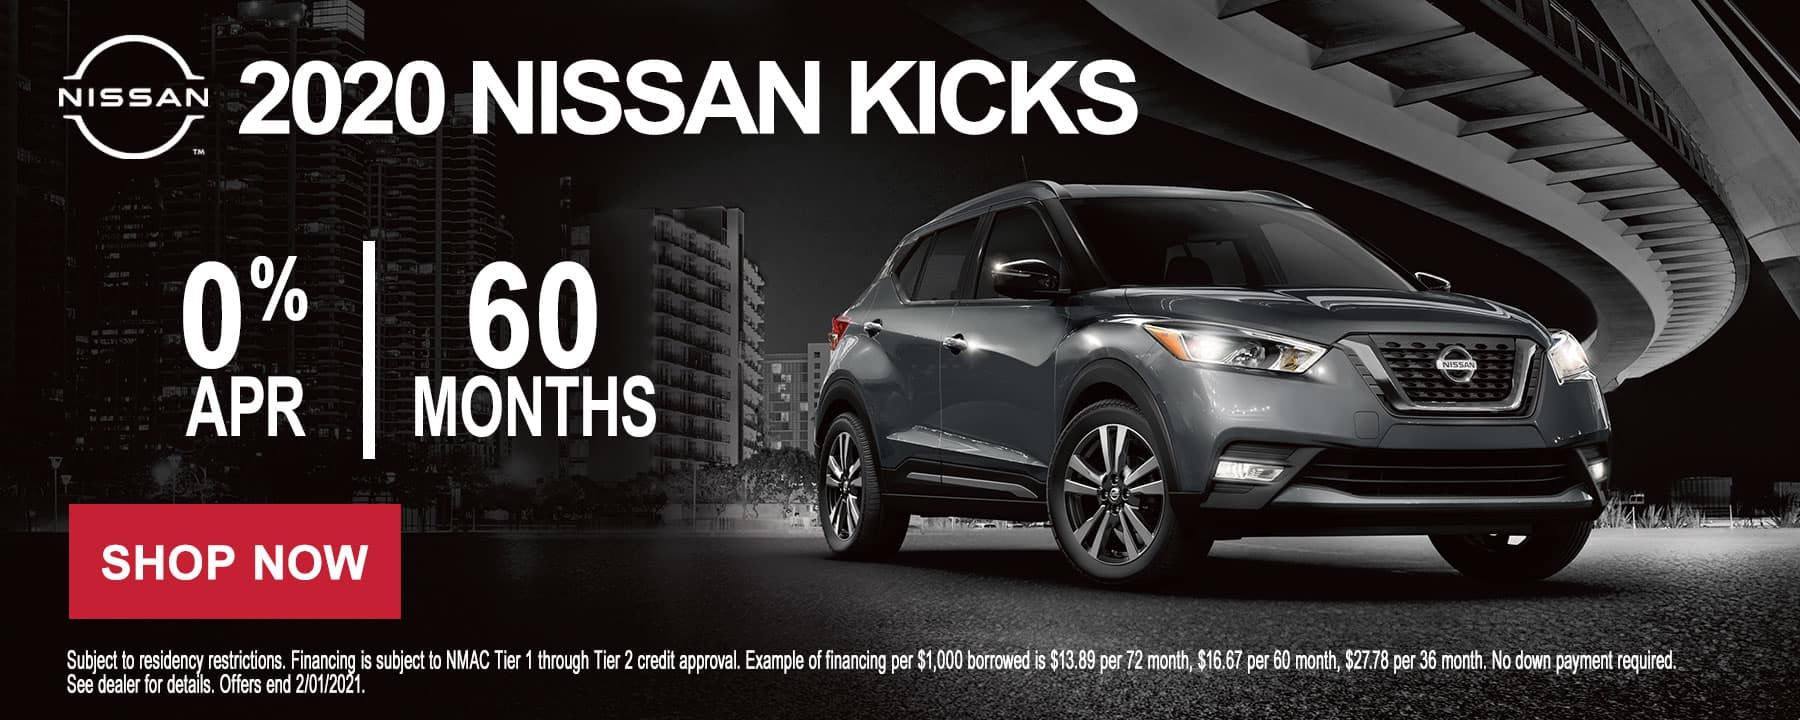 Get 0% for 60mos on the 2020 Nissan Kicks at Star Nissan